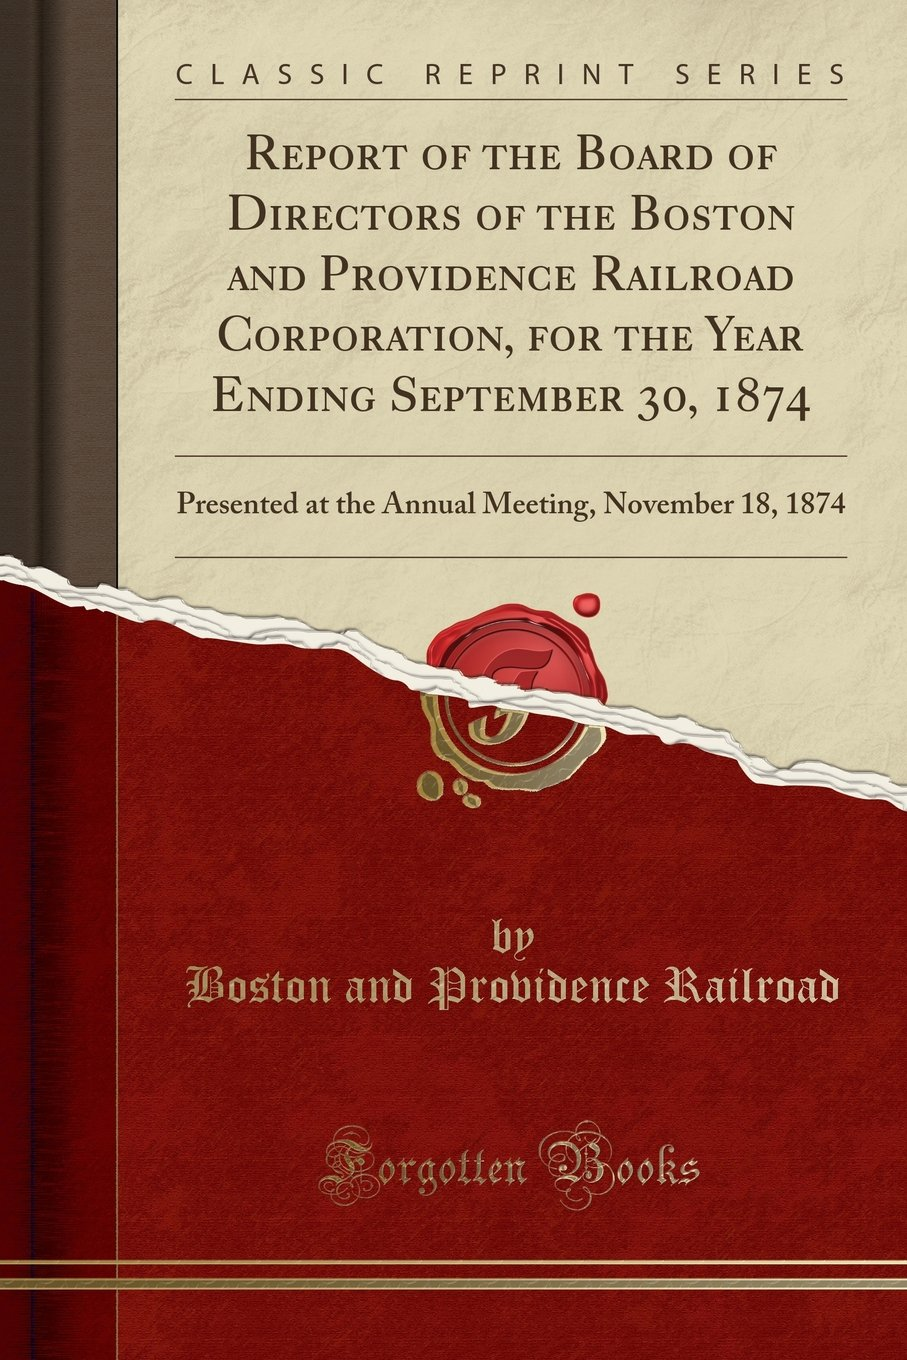 Download Report of the Board of Directors of the Boston and Providence Railroad Corporation, for the Year Ending September 30, 1874: Presented at the Annual Meeting, November 18, 1874 (Classic Reprint) ebook